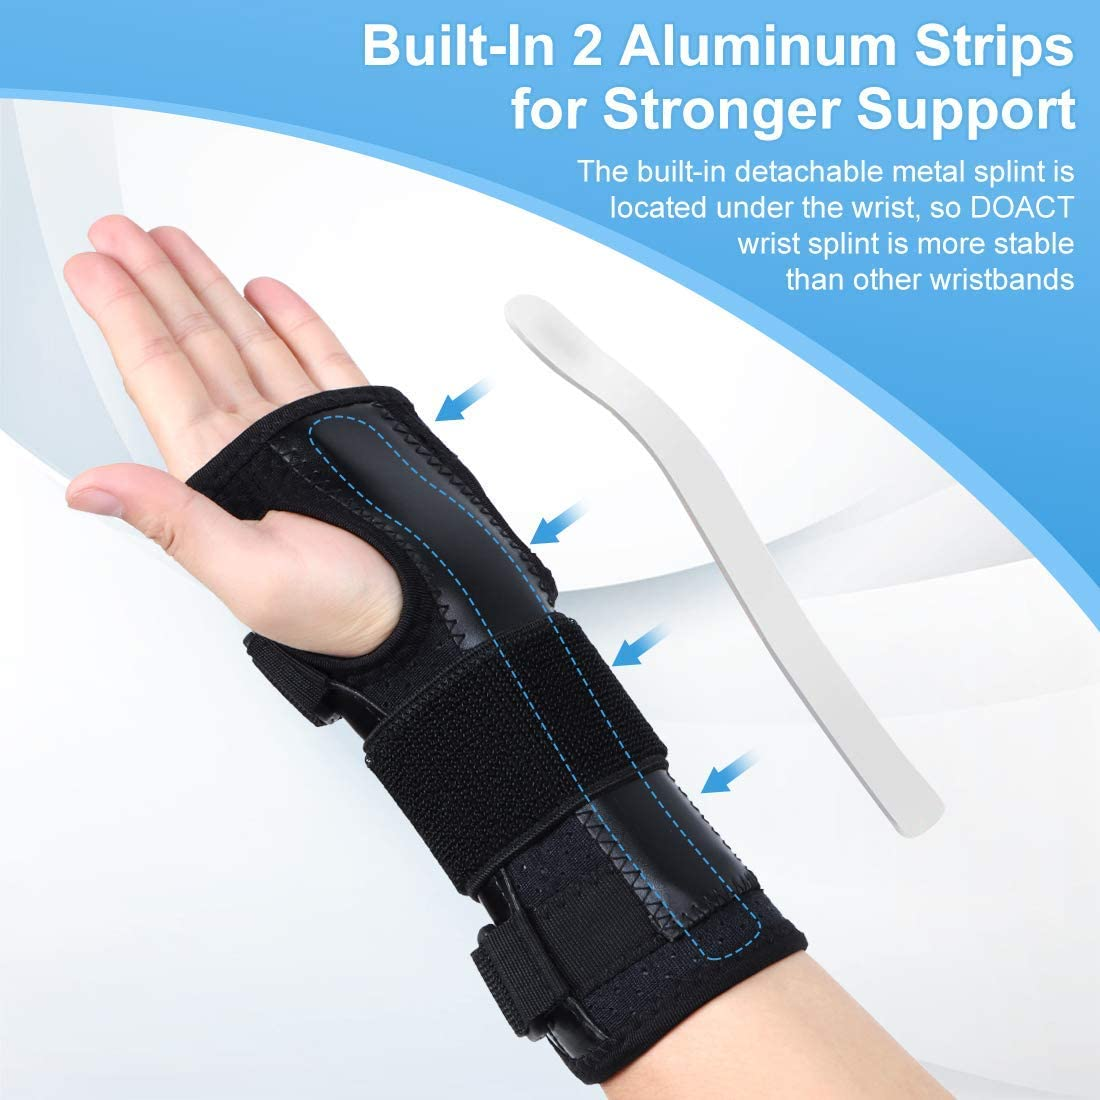 Breathable Right and Left Hand Universal Wrist Protector Sprains DOACT Wrist Support Black Edge Wrist Strap Wrist Brace Tendonitis Model Single Sell with Manual for Relieves Wrist Pain